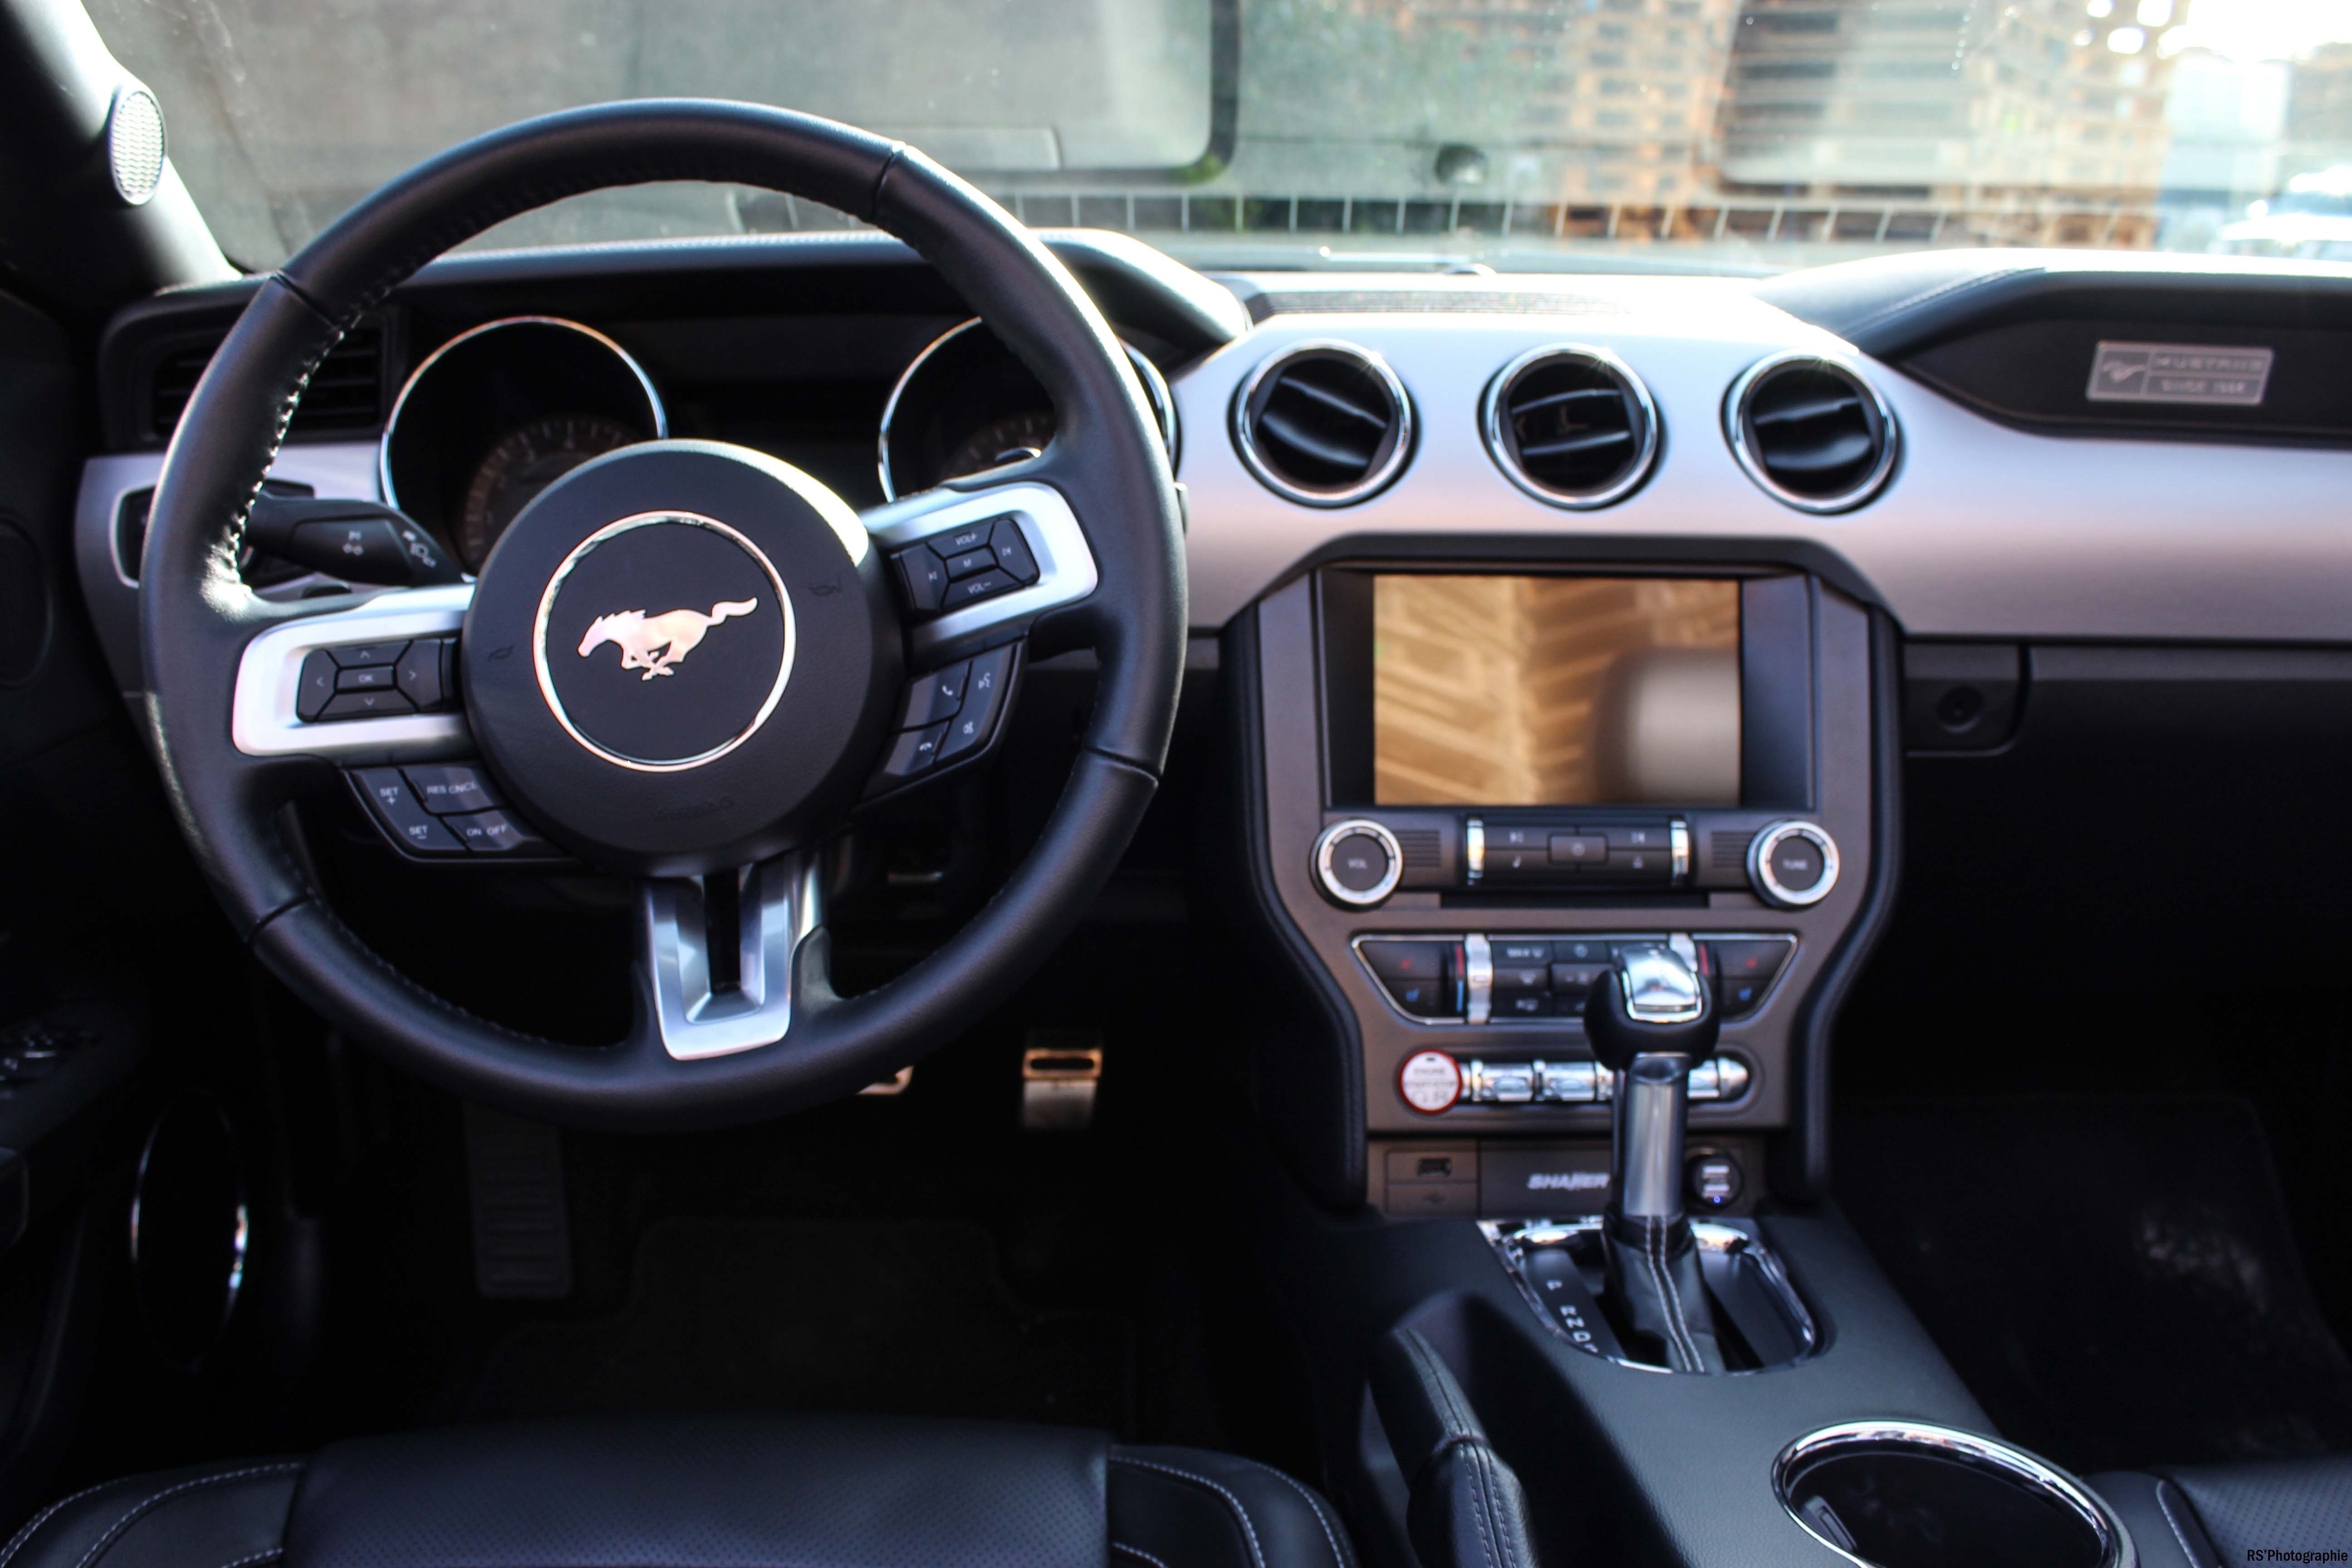 fordmustangeconvertible13-ford-mustang-convertible-ecoboost-intérieur-onboard-Arnaud Demasier-RSPhotographie